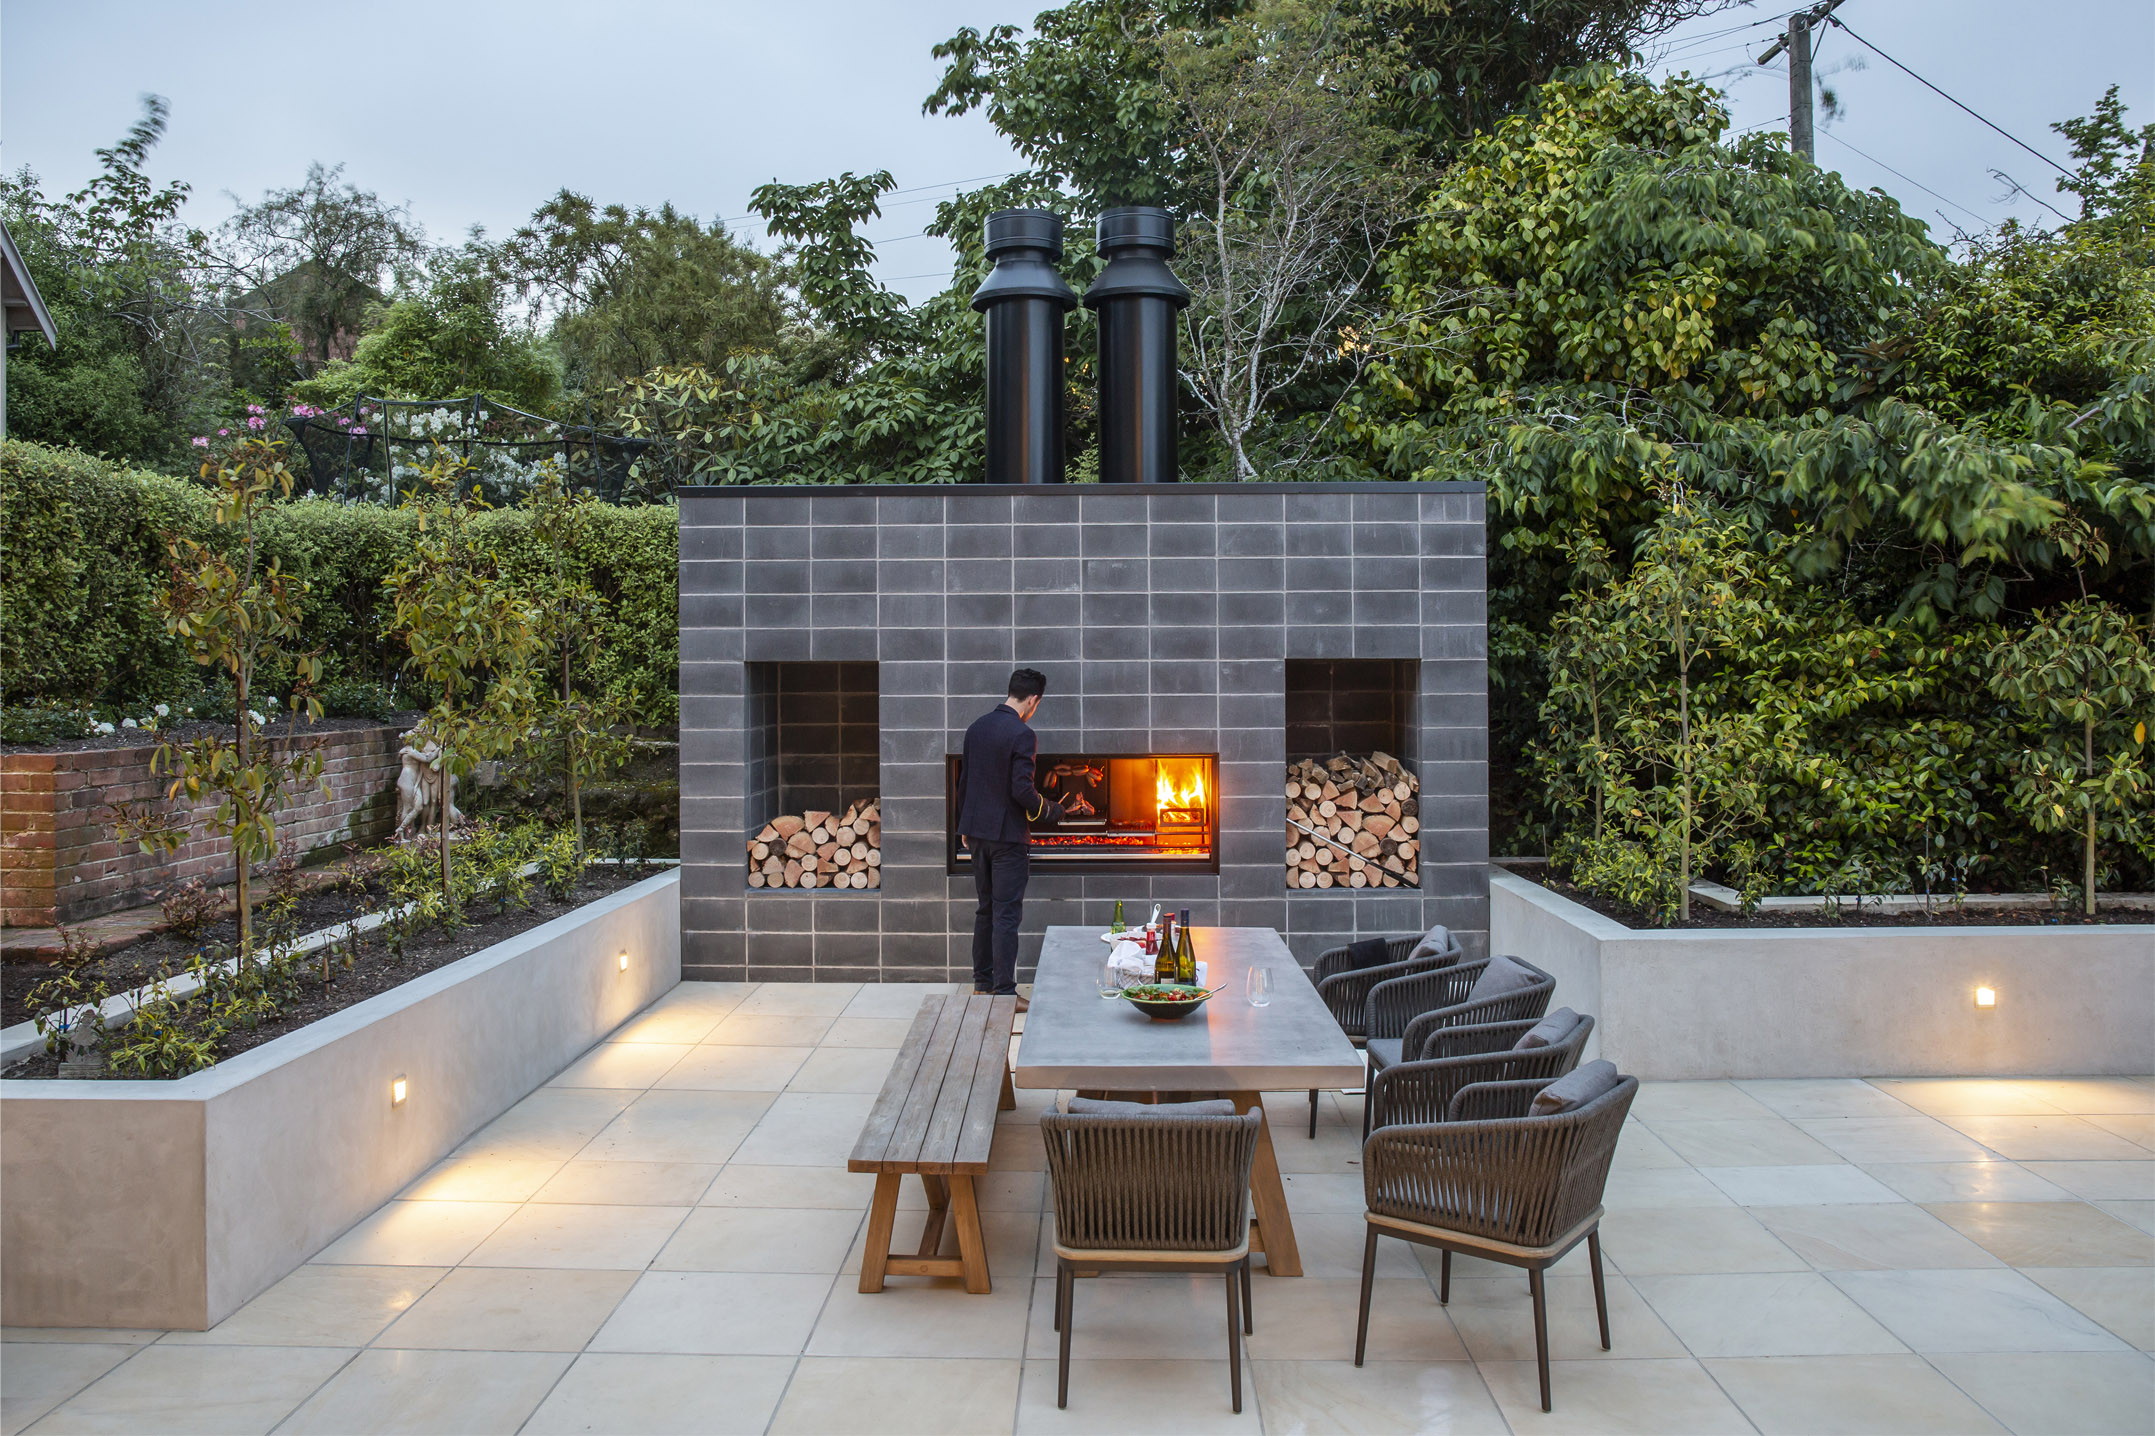 Introducing the EK Series: Outdoor Fireplace Kitchen